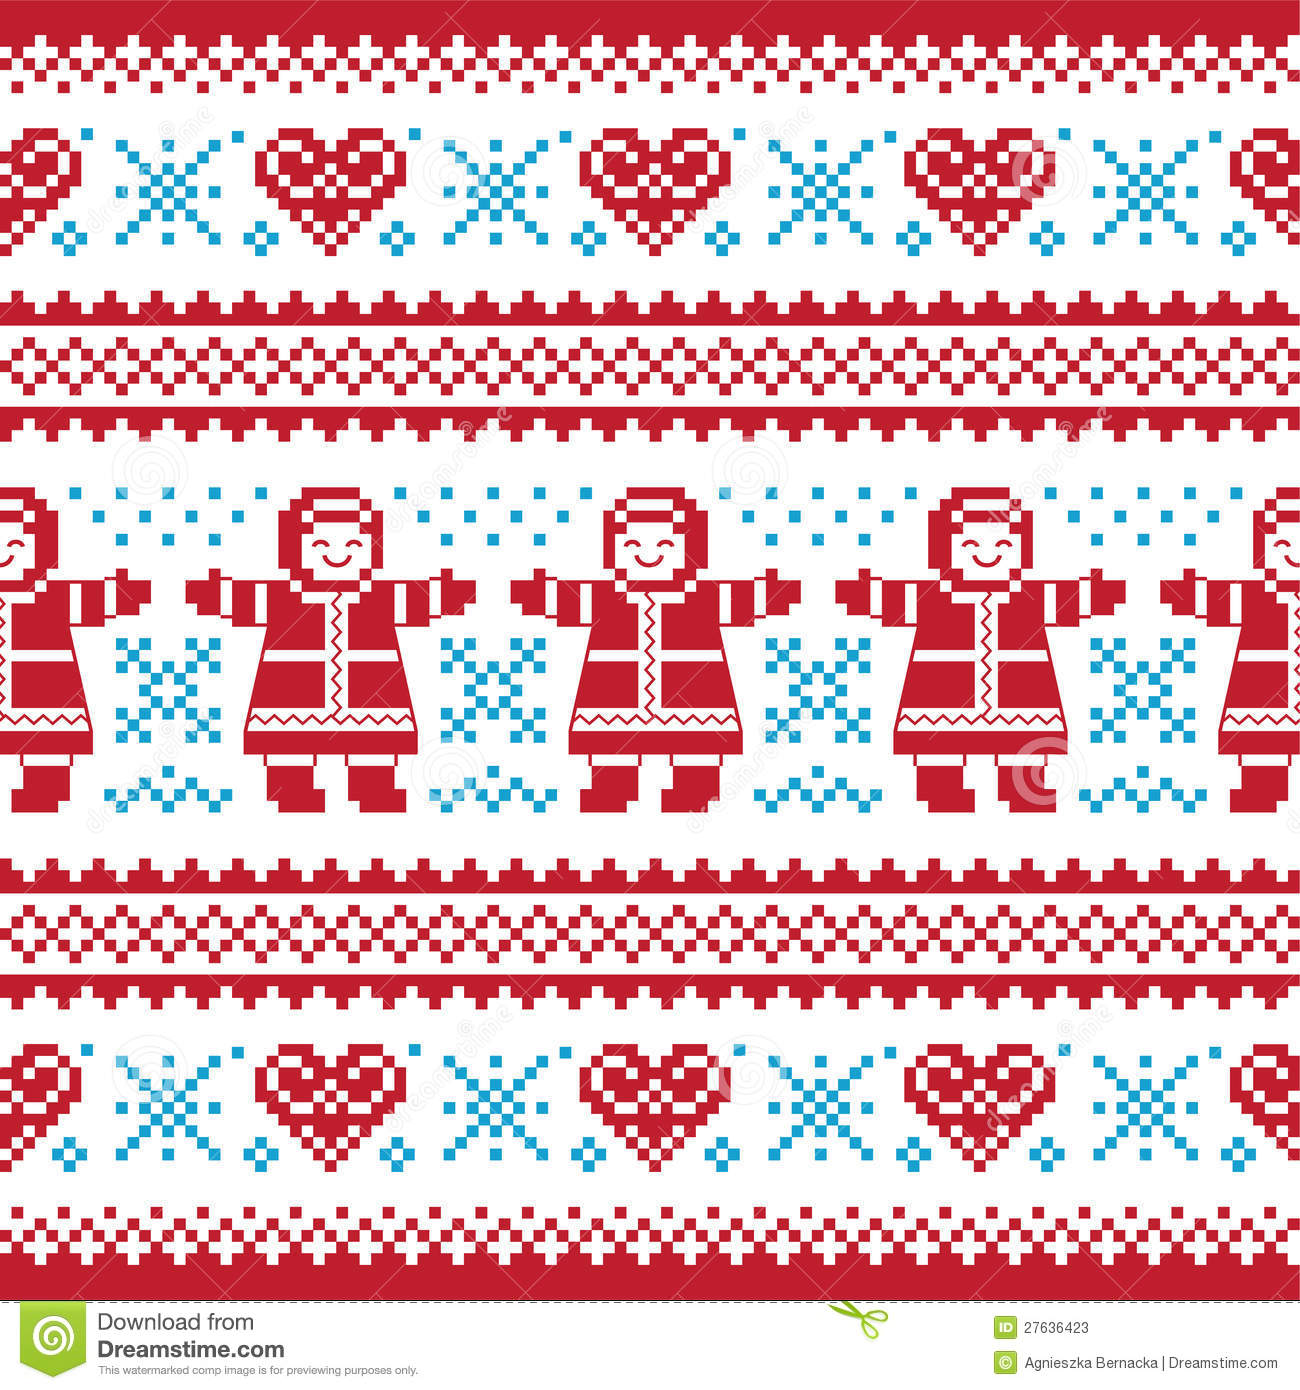 Knitting Patterns For Christmas Cards : Christmas, Winter Knitted Pattern, Card Stock Photos - Image: 27636423